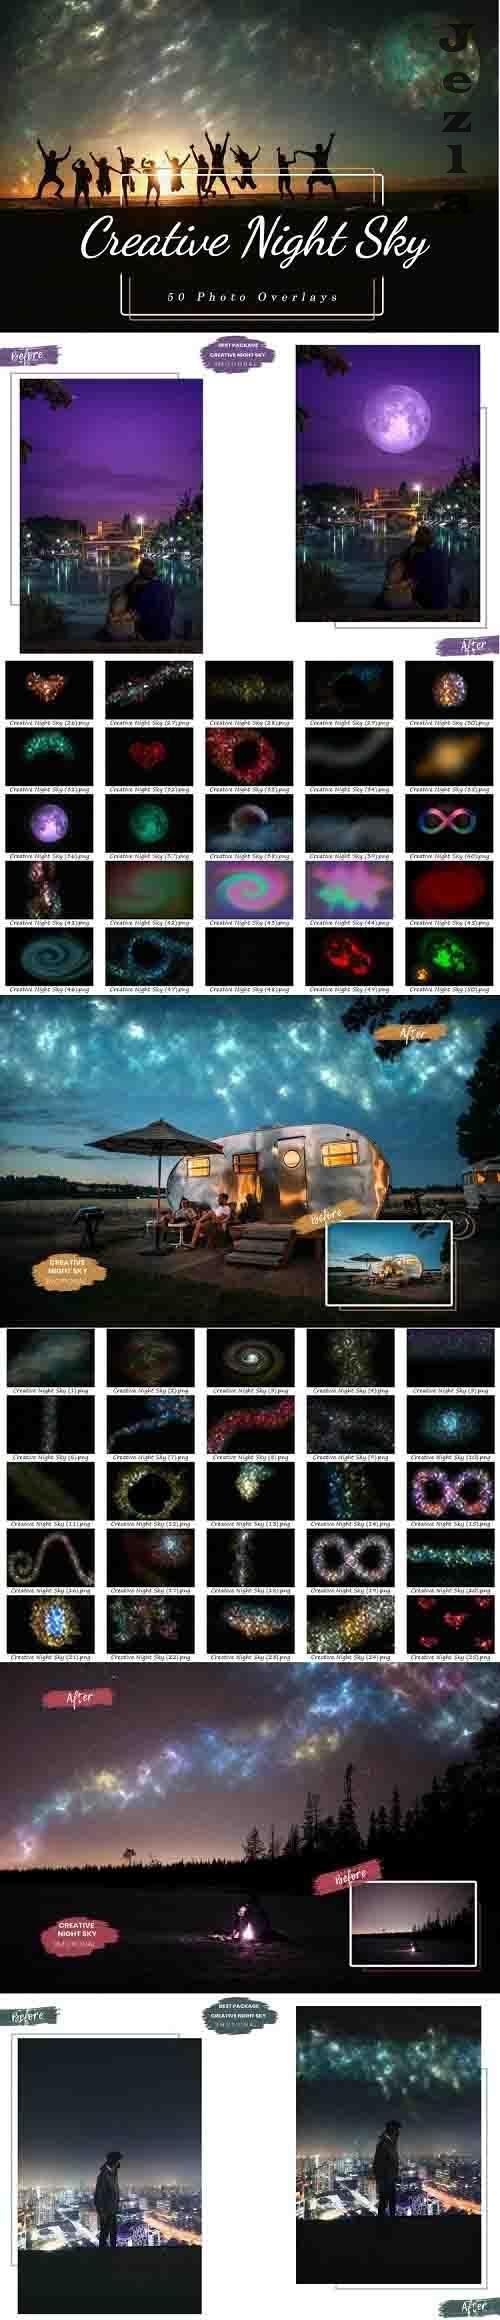 50 Creative Night Sky, Add Starry Sky To Photo, Moon Overlay - 1239110